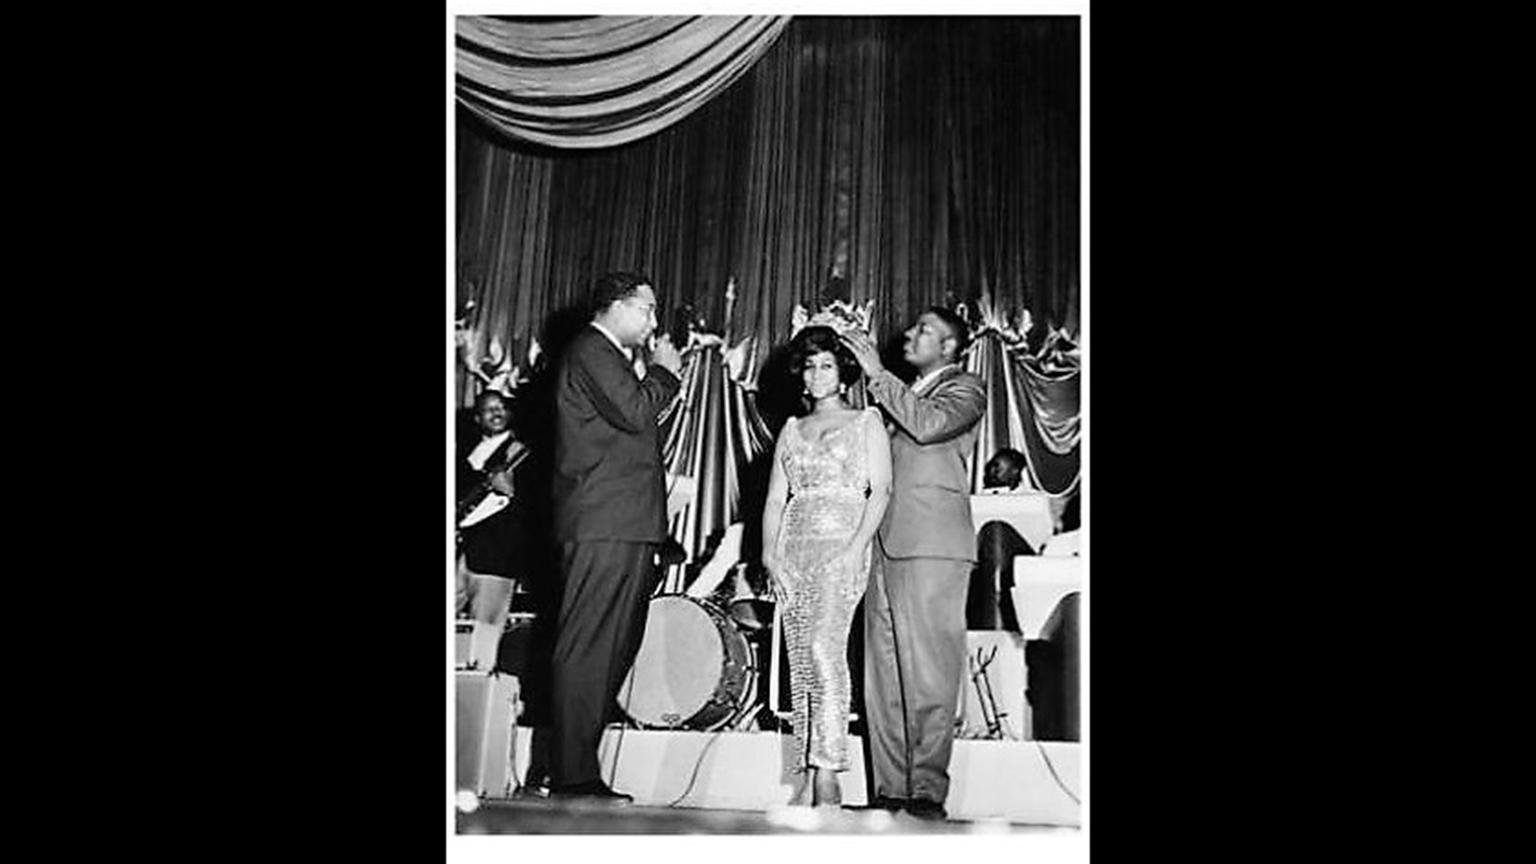 Aretha Franklin is crowned by Pervis Spann at the Regal Theater in May 1964 while Rodney Jones watches. (Courtesy of Jet Magazine)